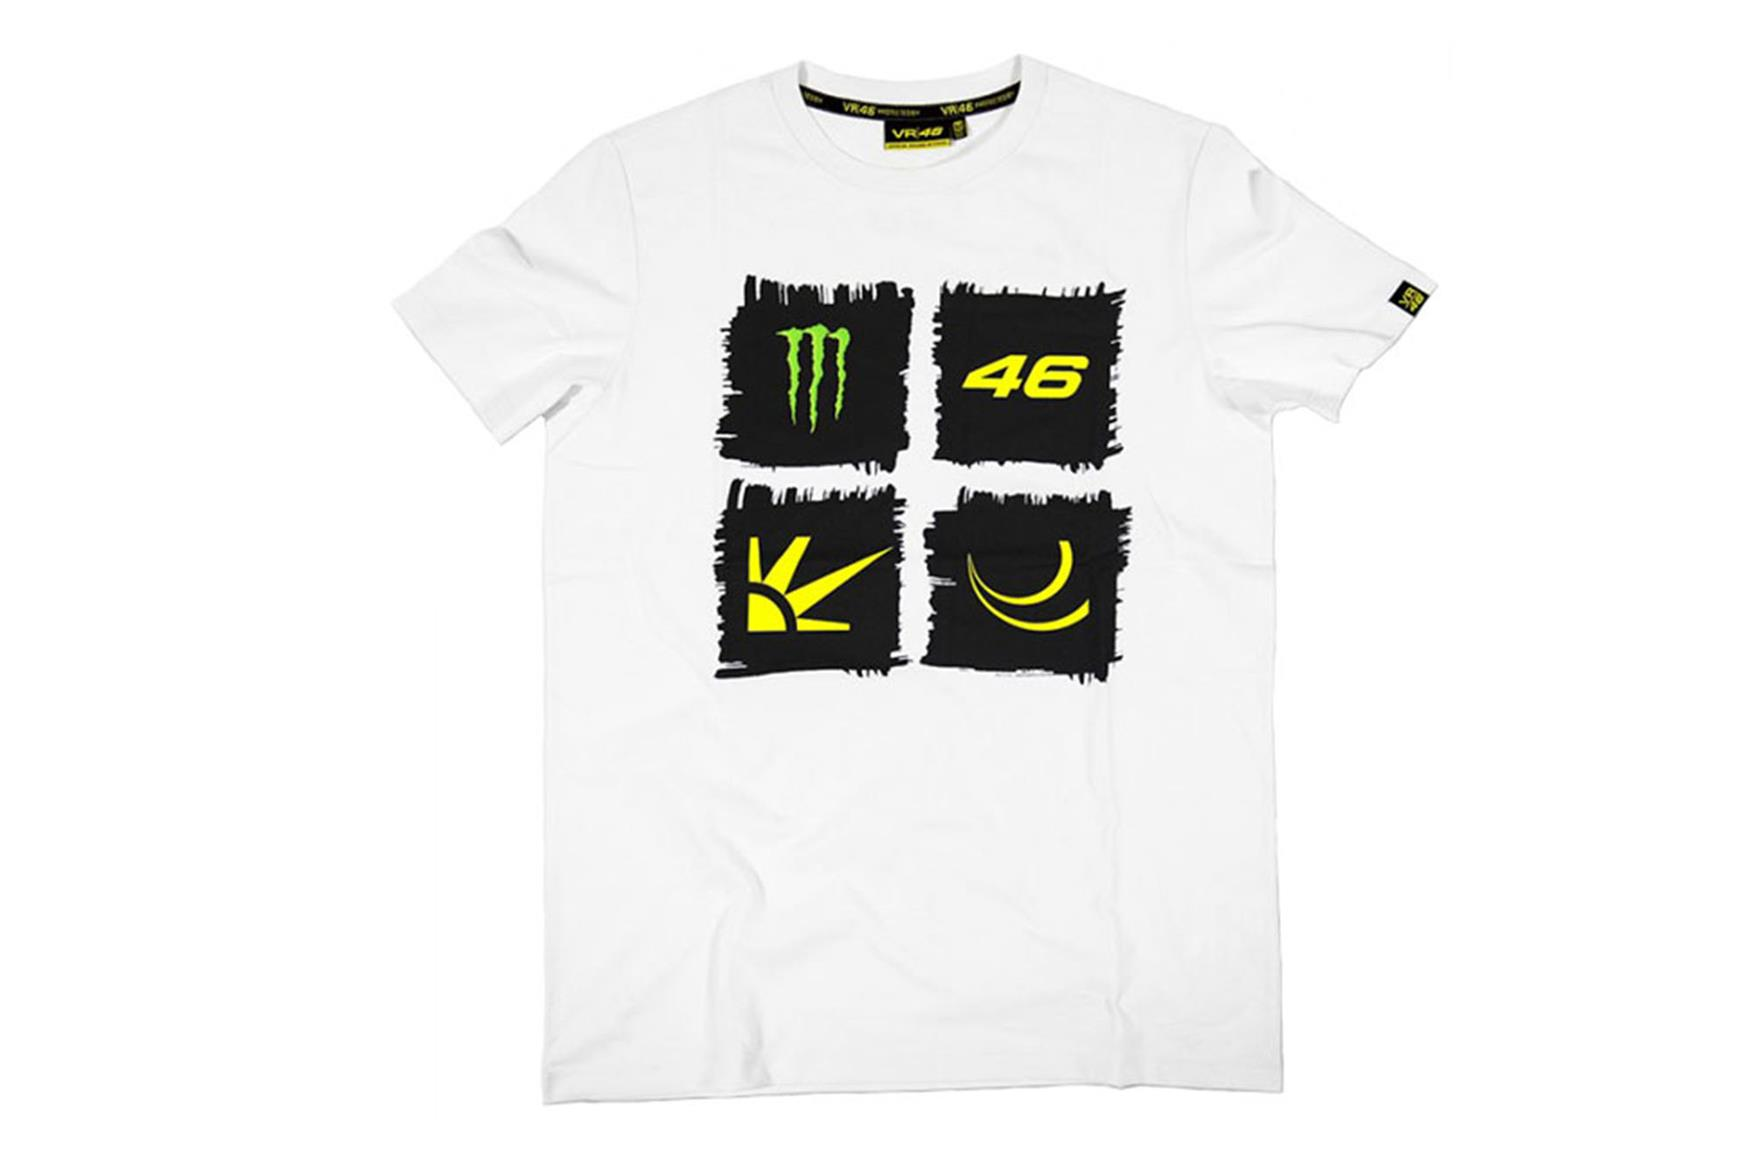 A Rossi shirt could cause a riot in a Marquez household